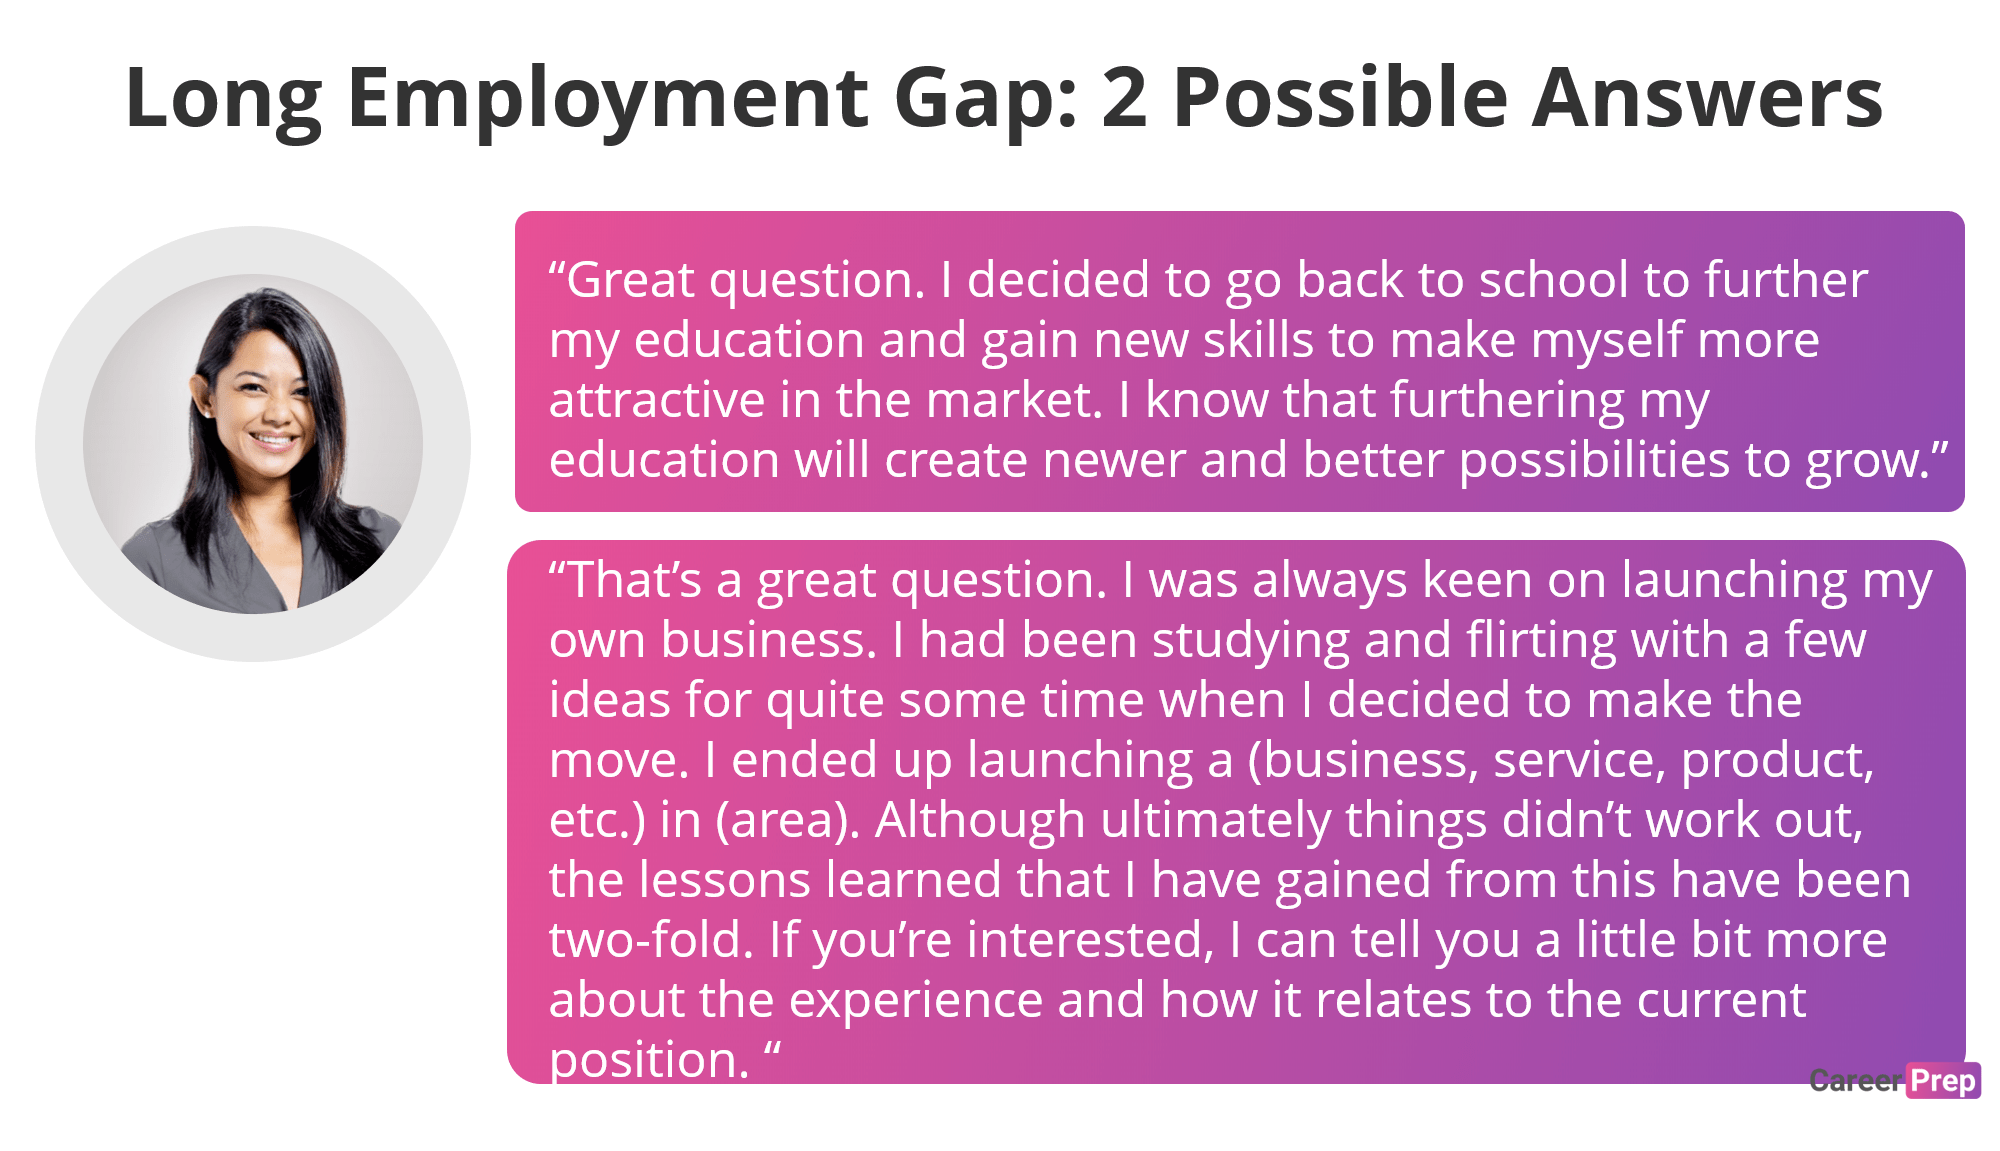 Long Employment Gap - 2 Possible Answers